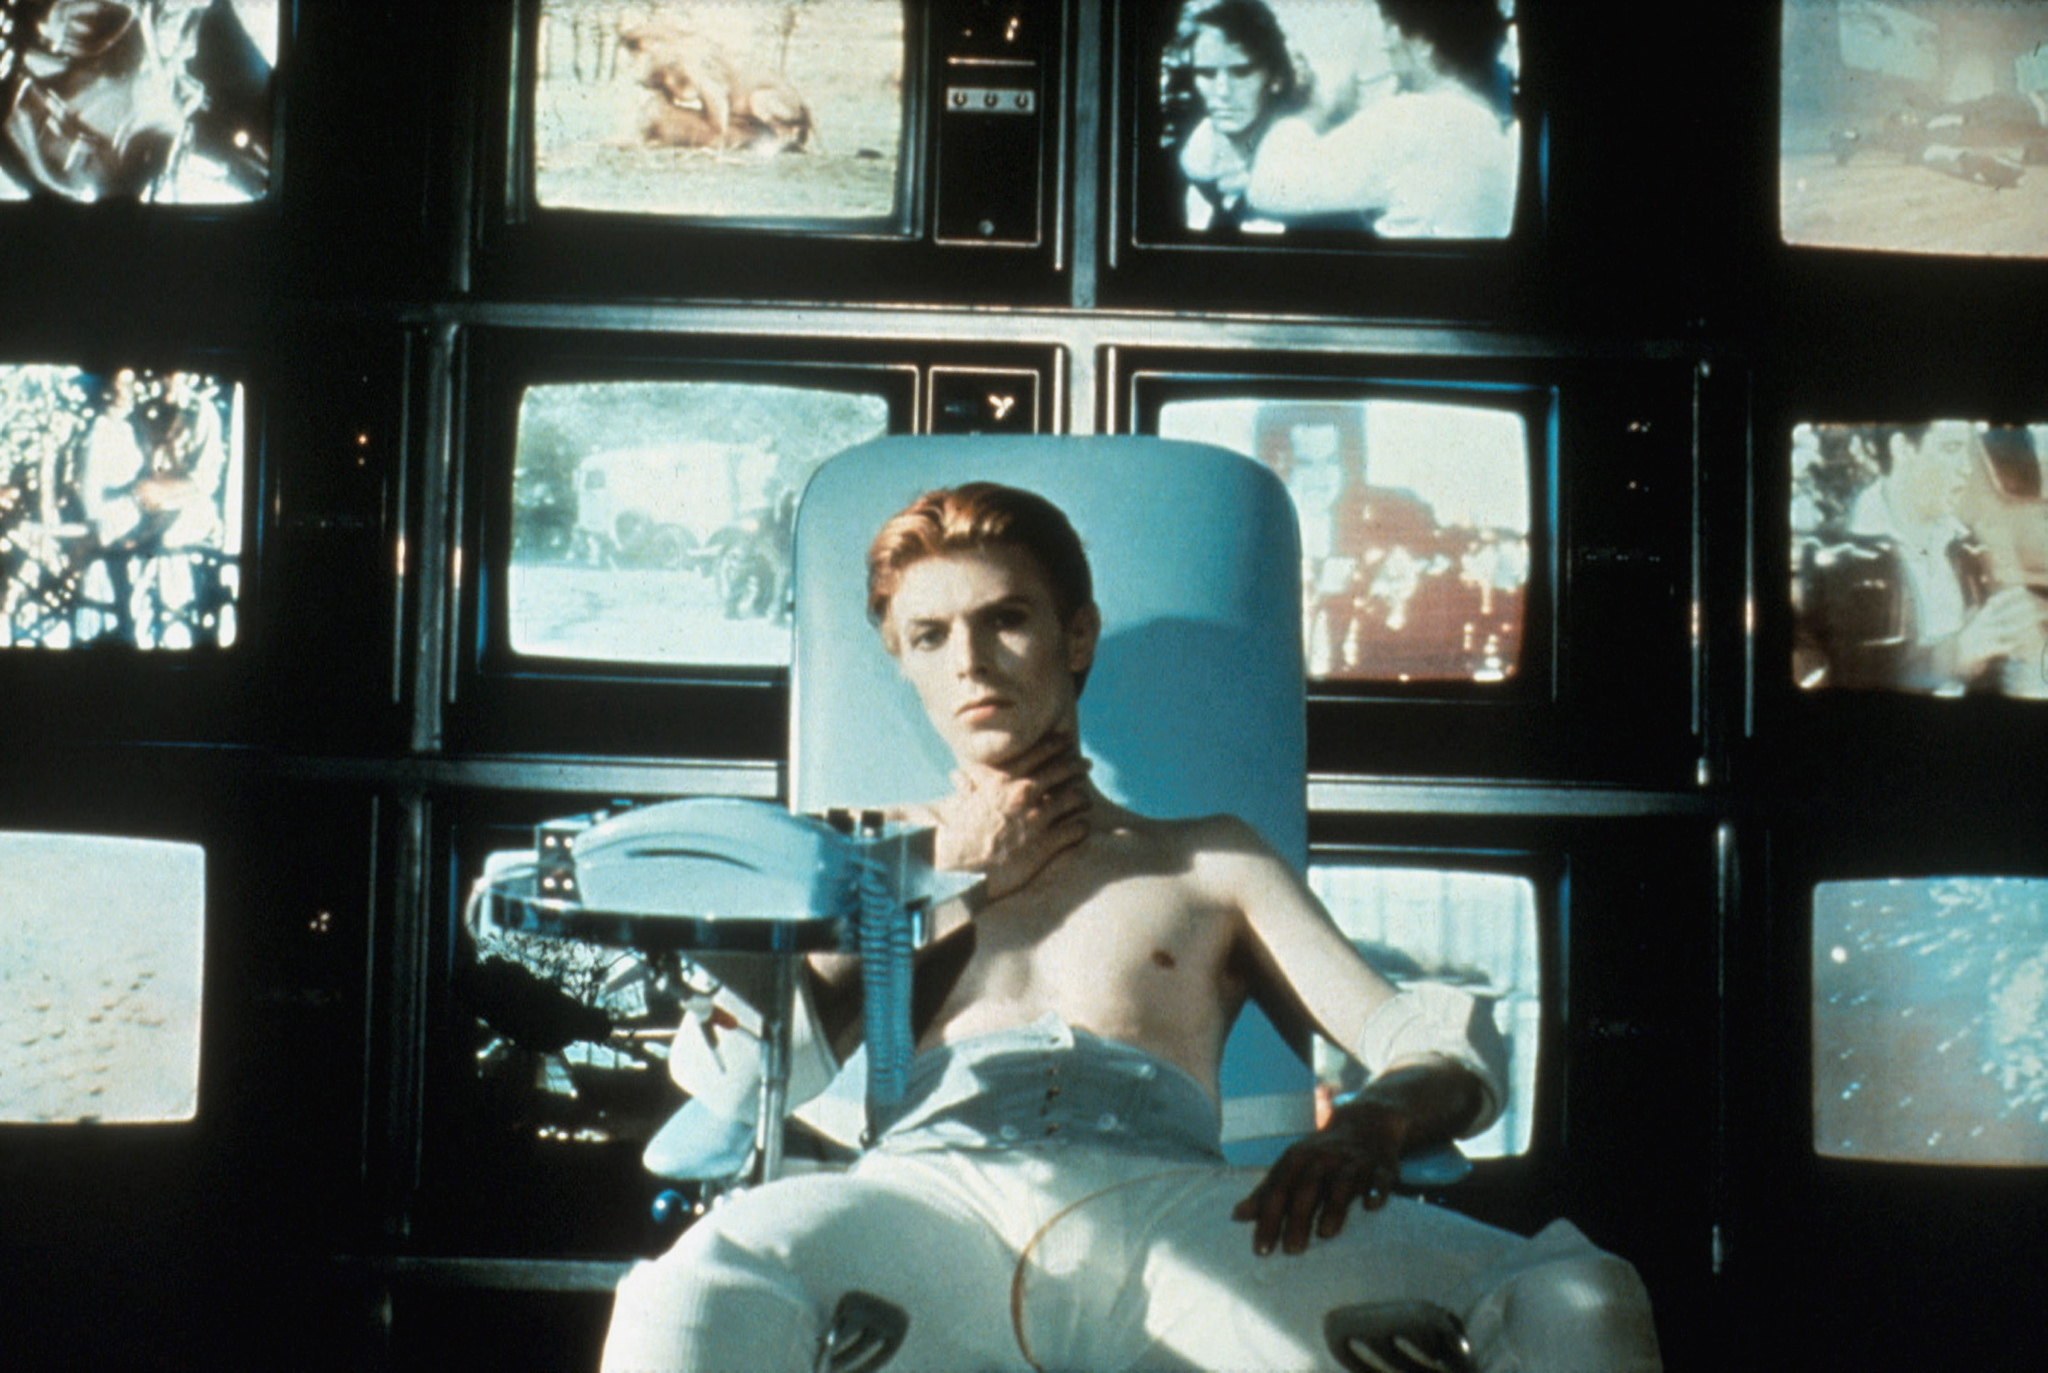 Sci-fi movie: The Man Who Fell to Earth